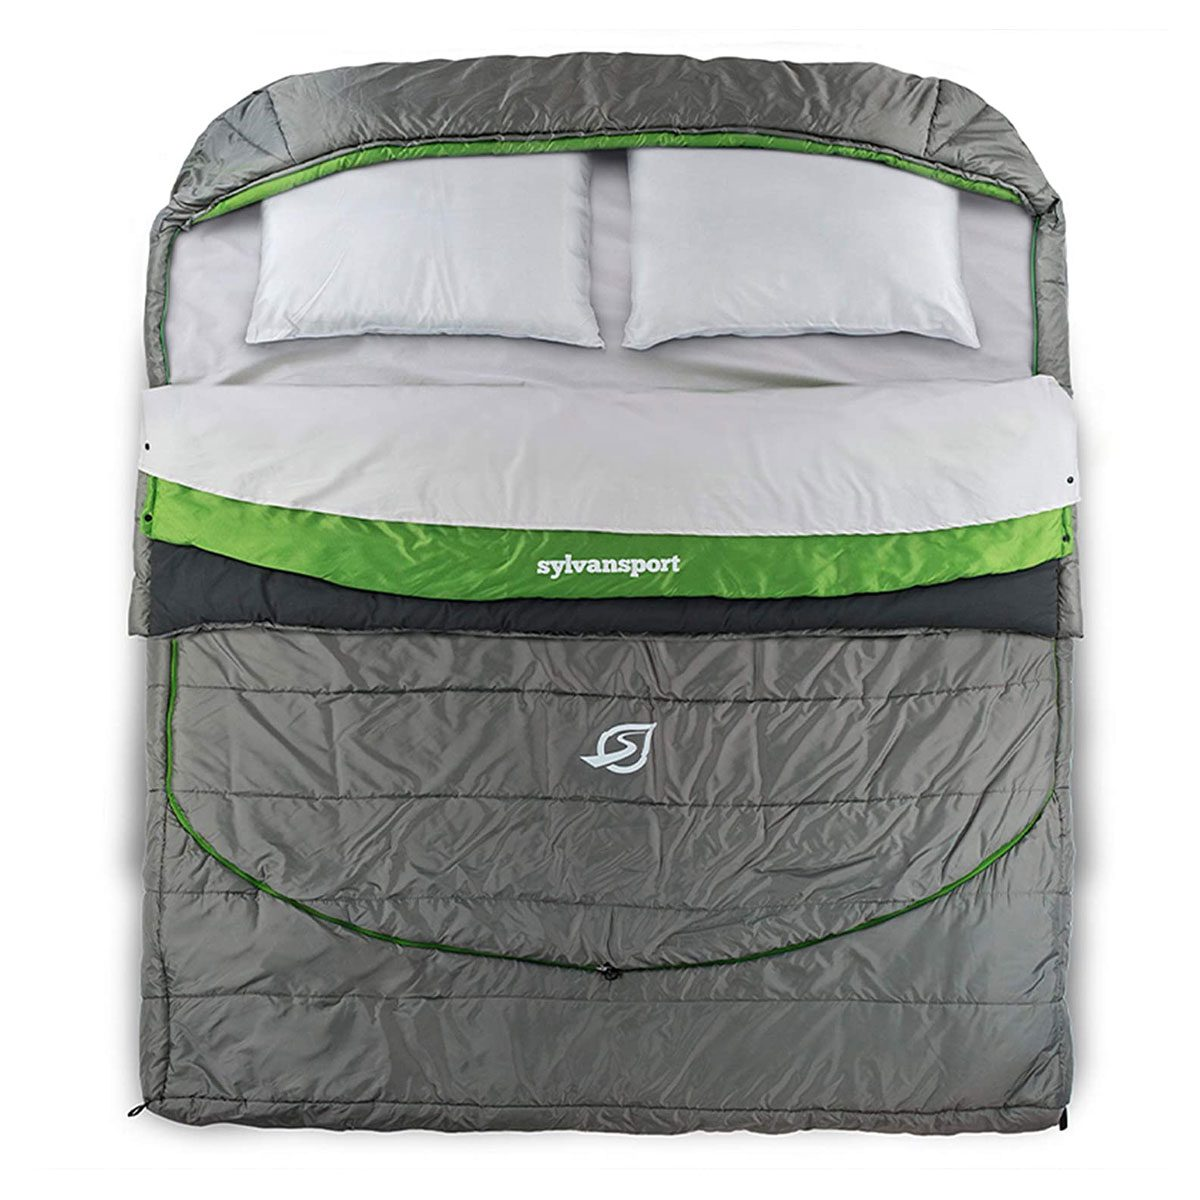 Best Winter Camping Gear for 2020